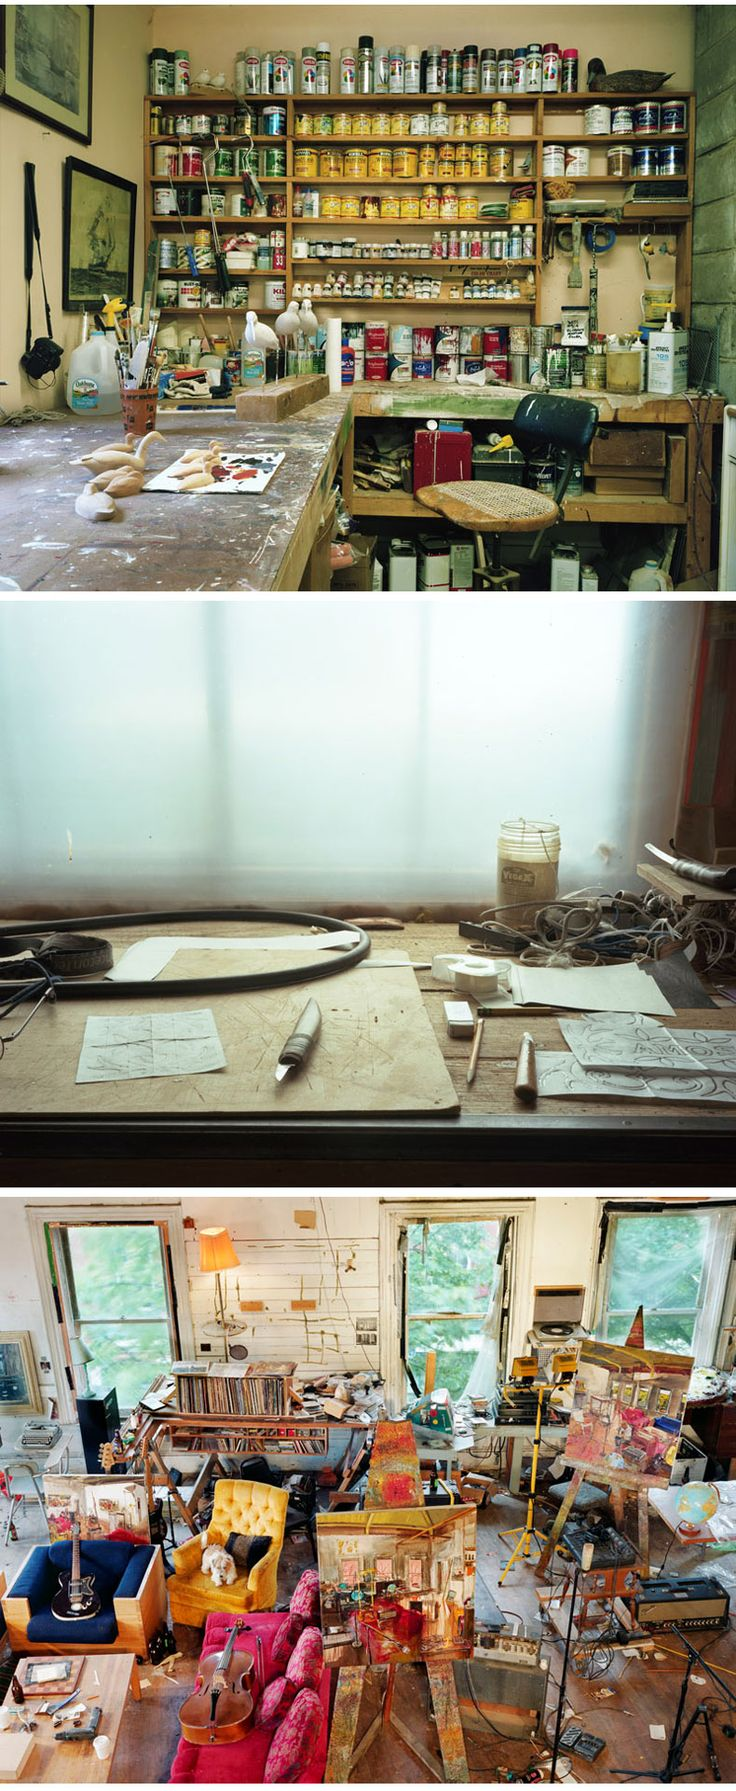 Meggan Gould #workspace #studio http://thefoxisblack.com/2012/09/25/workspaces-an-exploration-into-the-places-we-make-by-meggan-gould/